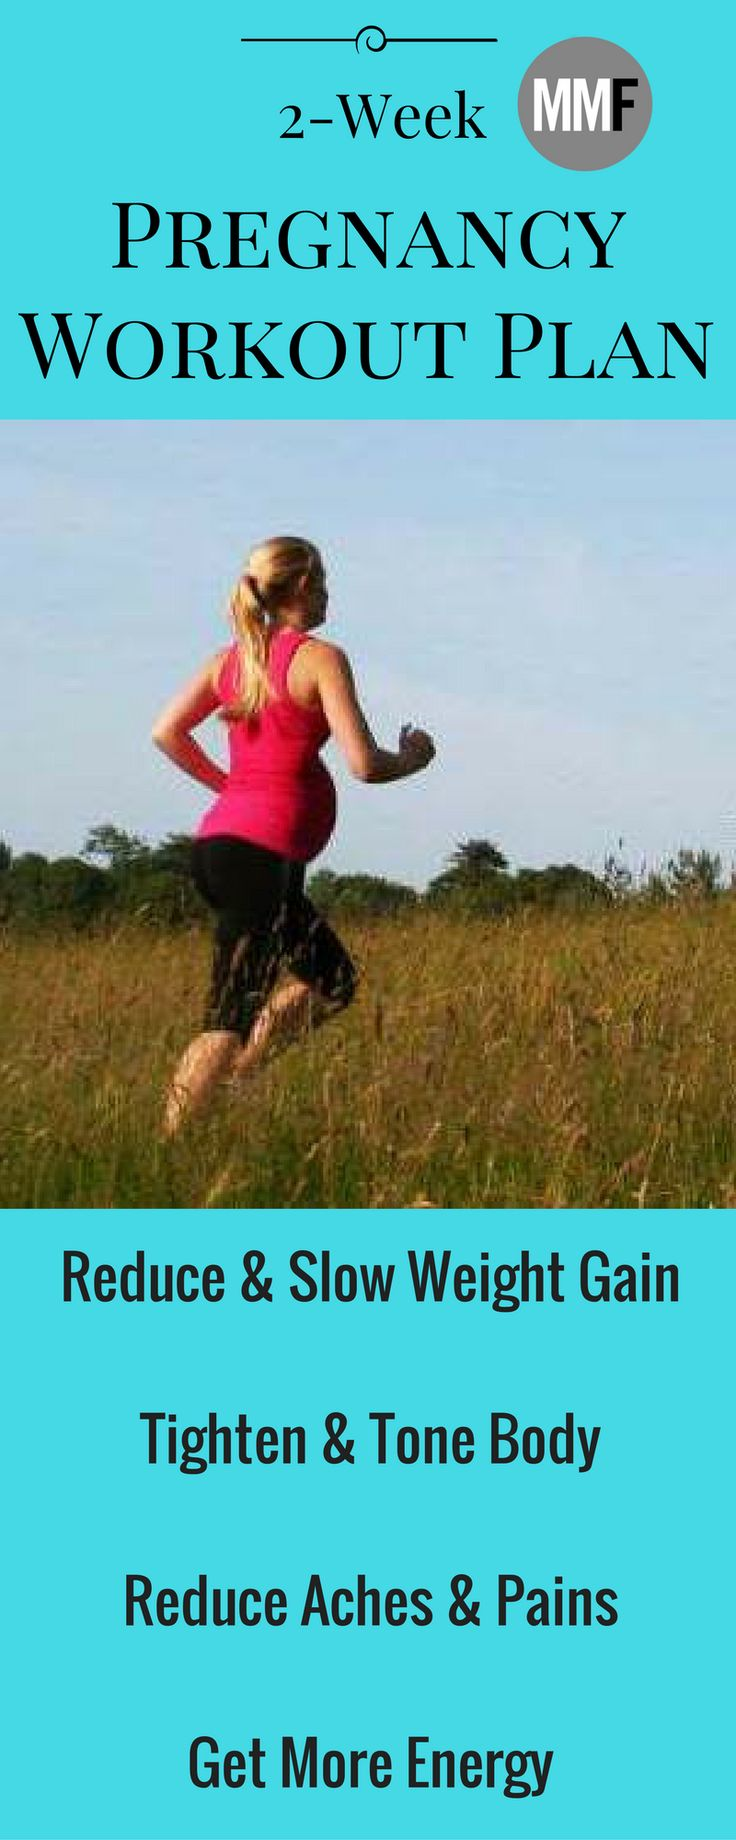 Reduce Pregnancy Weight Gain with this free 2 week pregnancy workout plan.